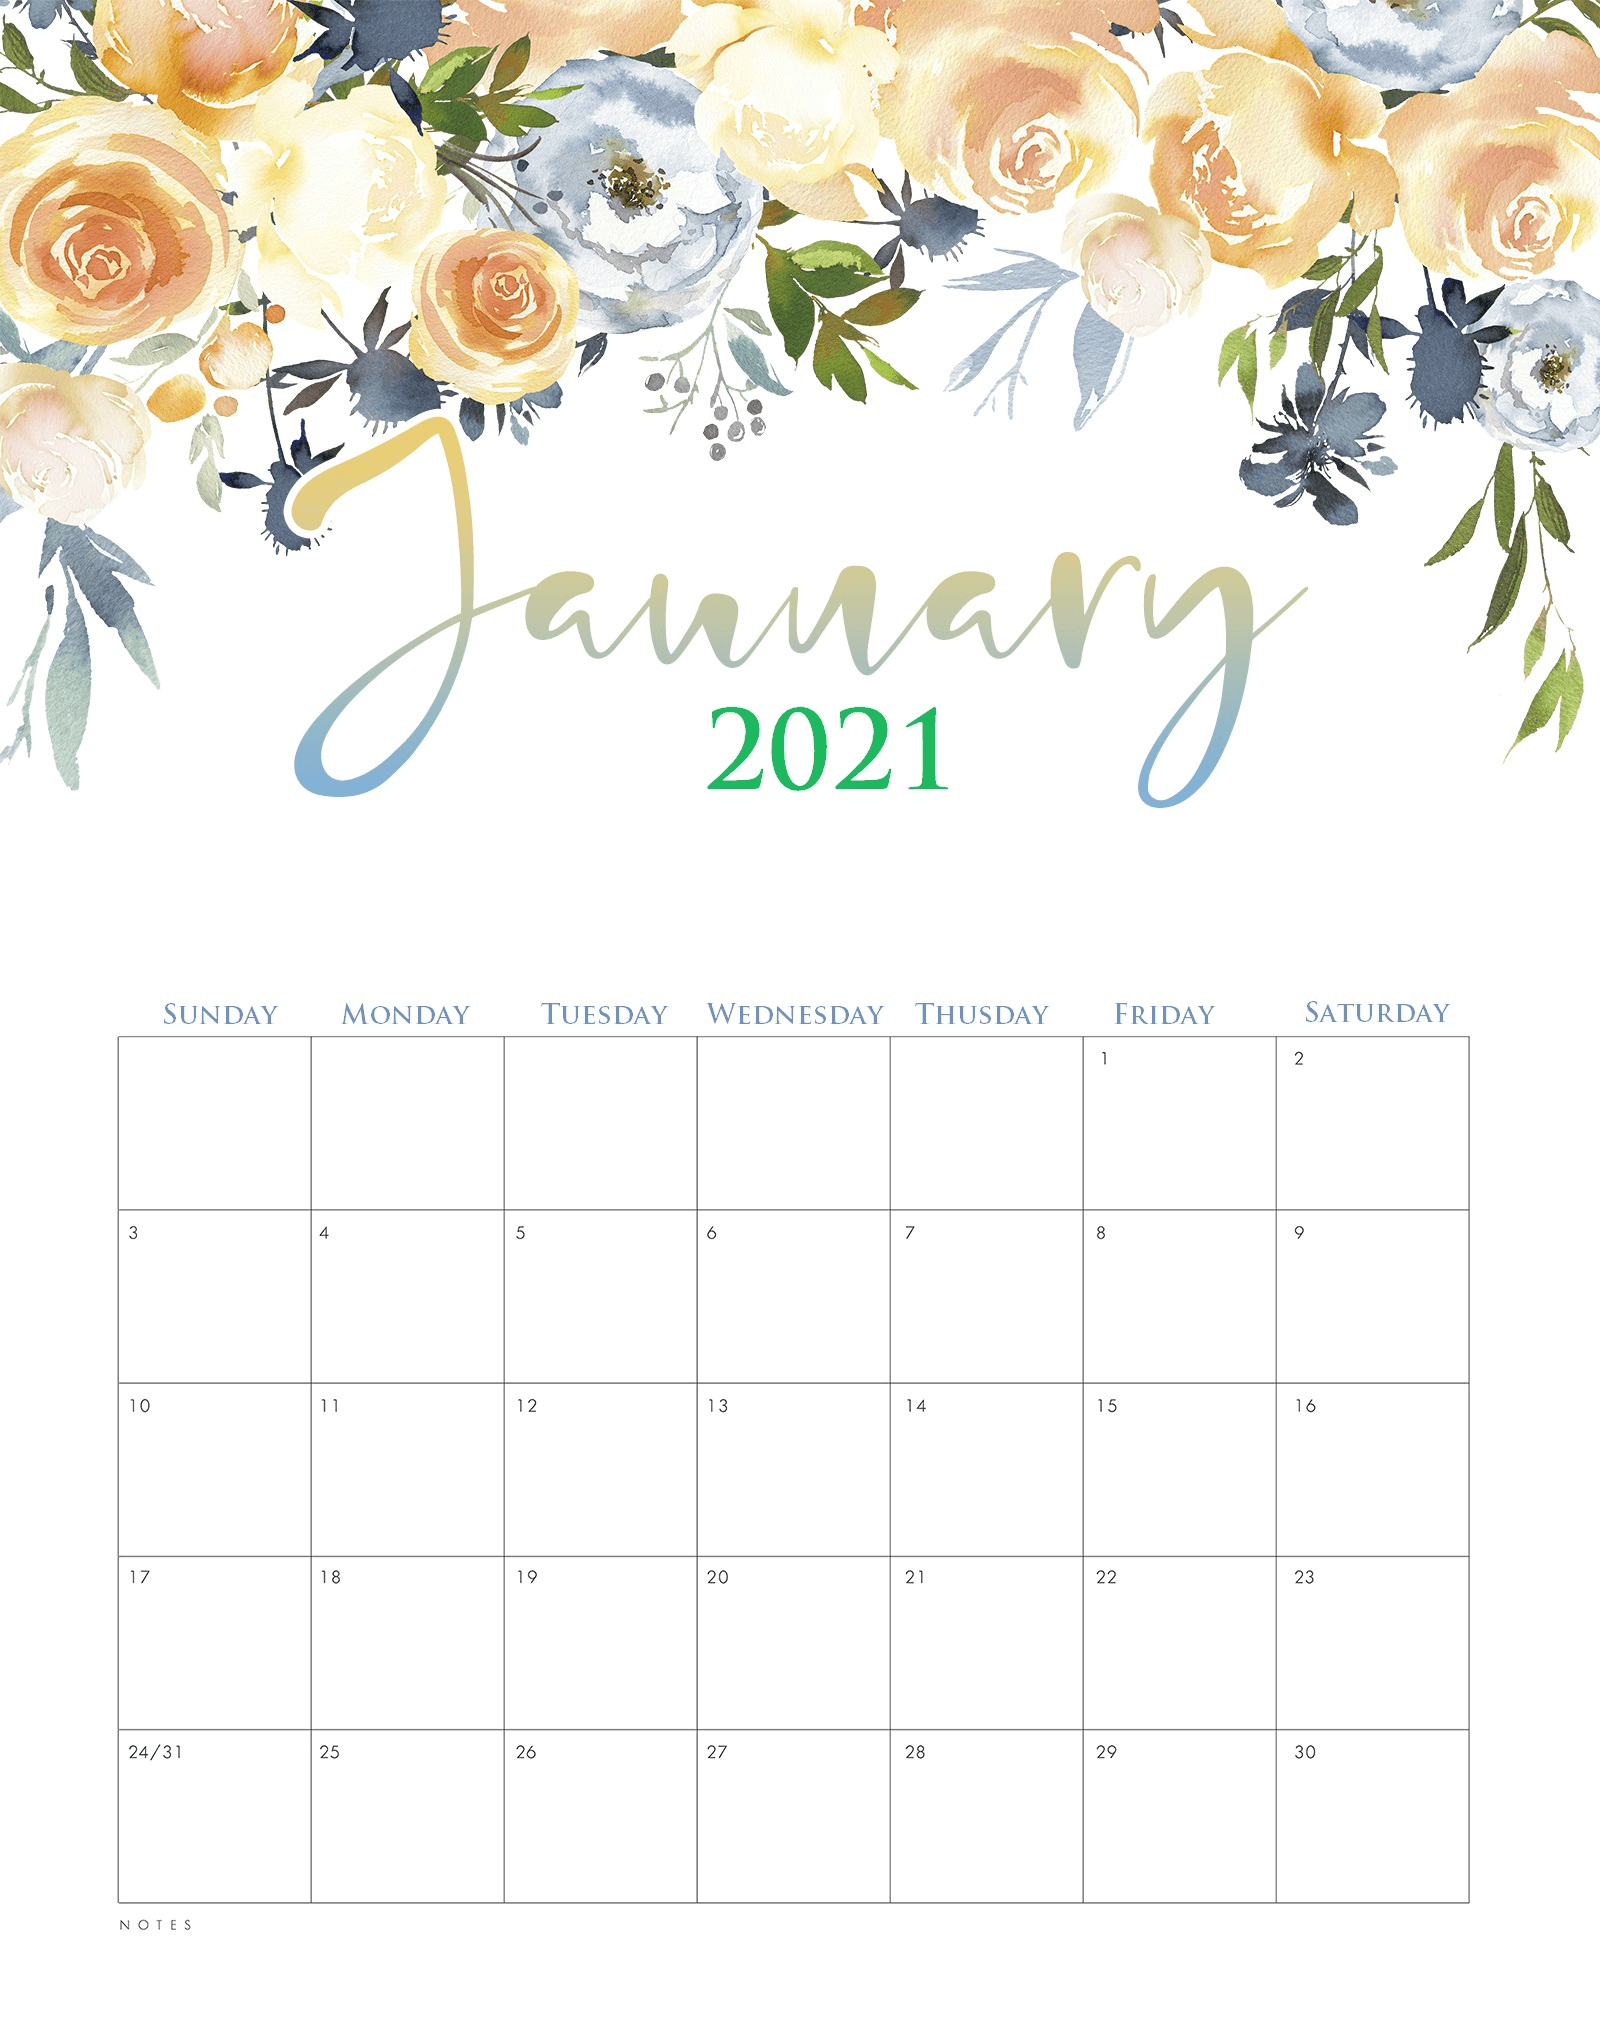 Cute January 2021 Desk Calendar